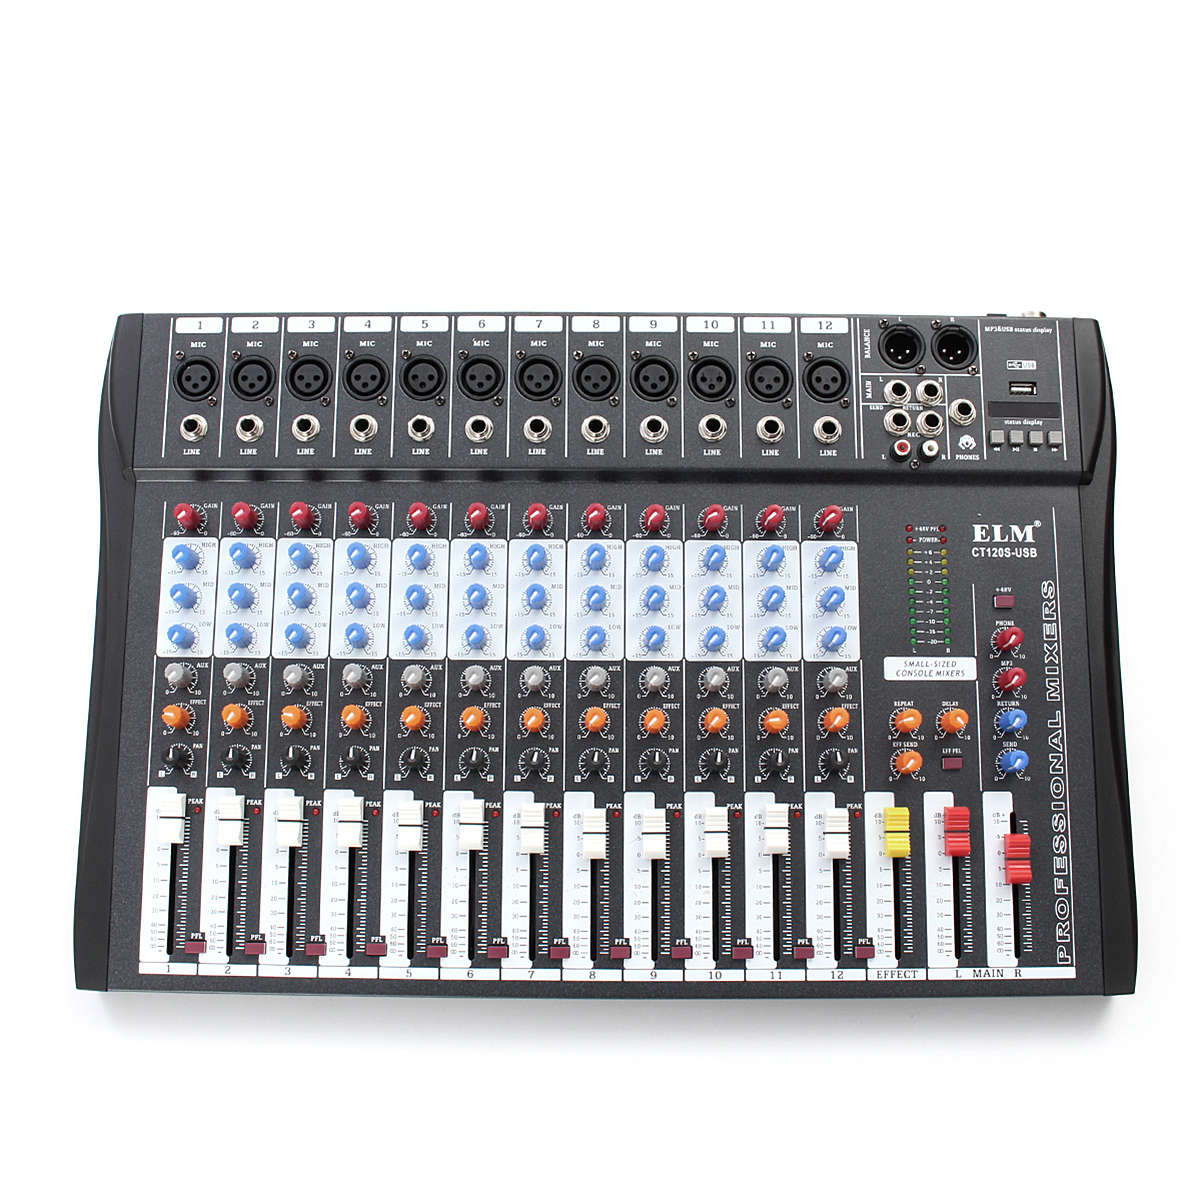 Ct 120s 12 channel professional live studio audio mixer power usb mixing console - Professional mixing console ...